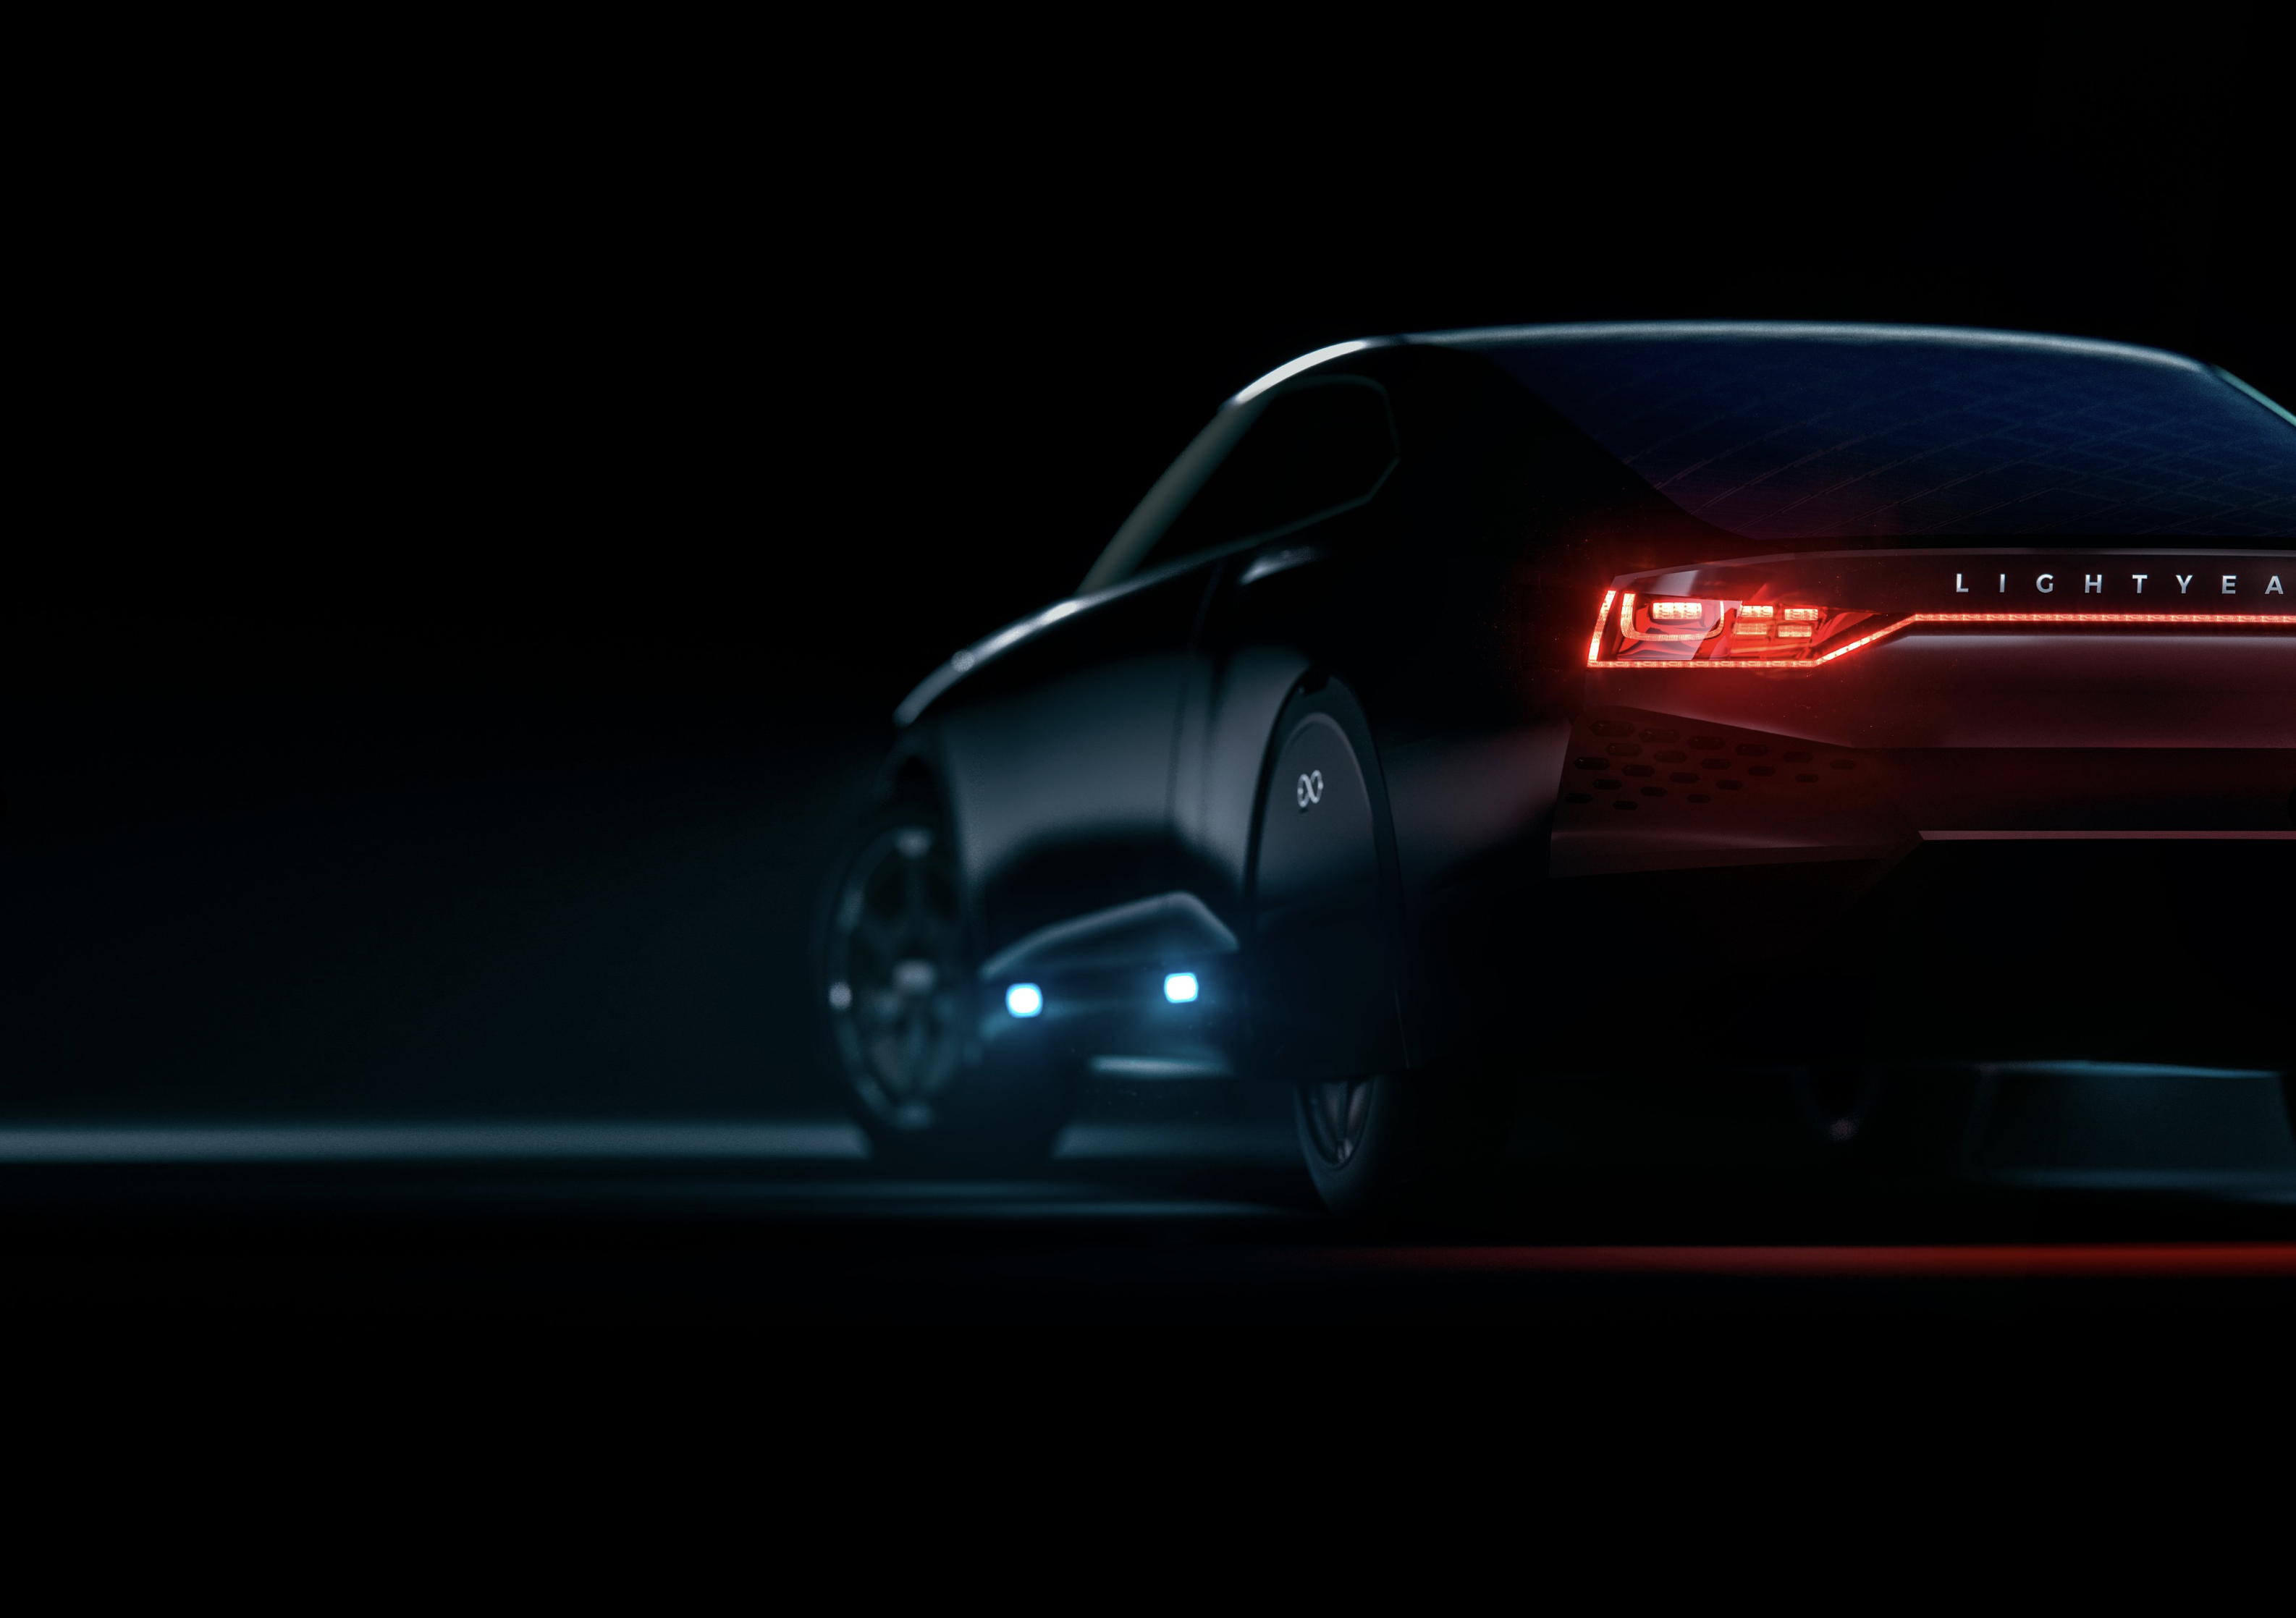 Lightyear Partners With Leaseplan Nl To Deliver First Awd Solar Powered Family Car Electrek